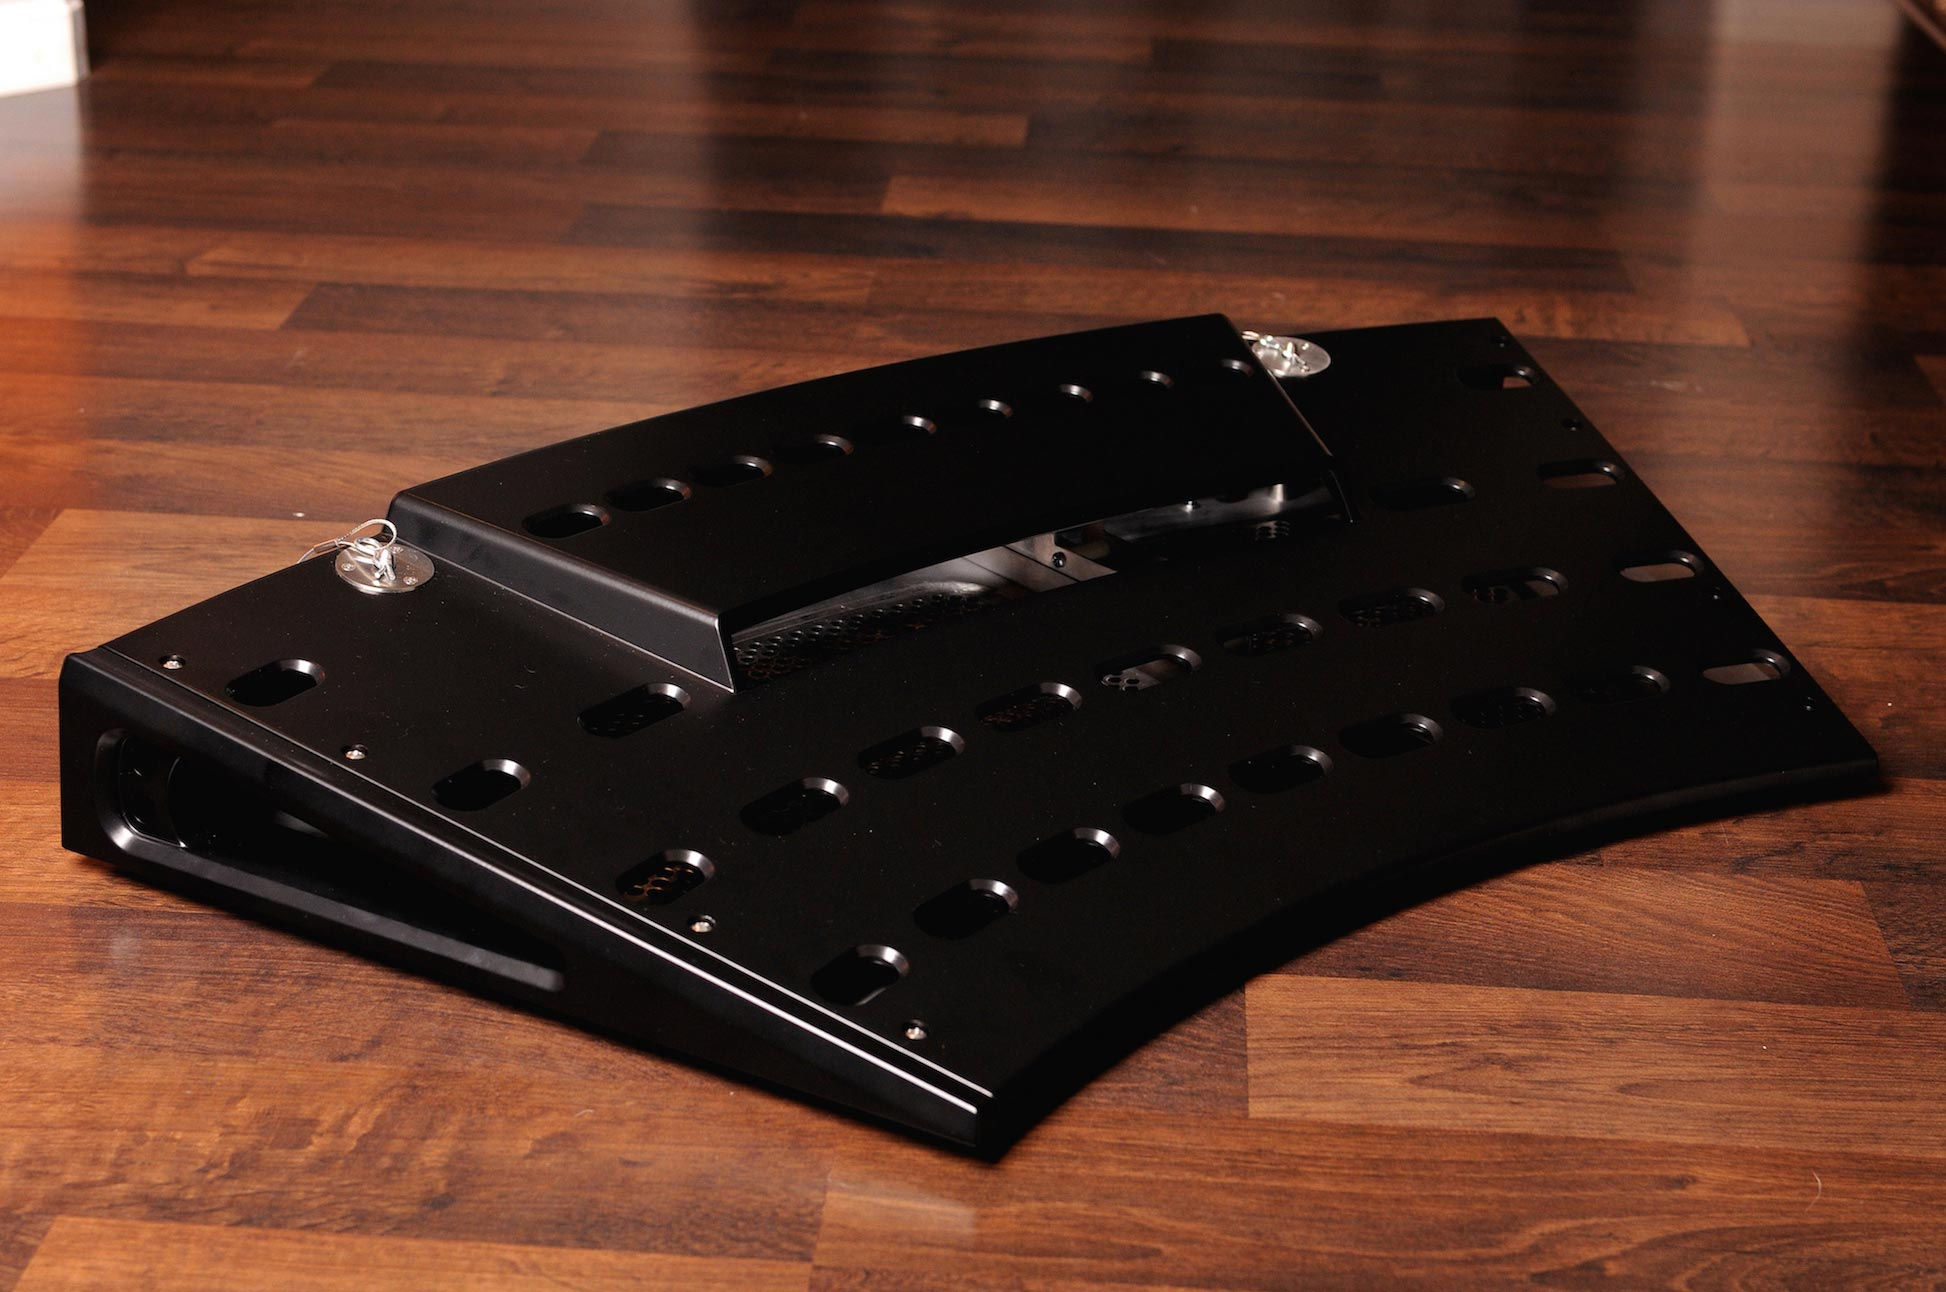 Fastback LT Pedalboard in Matte Black